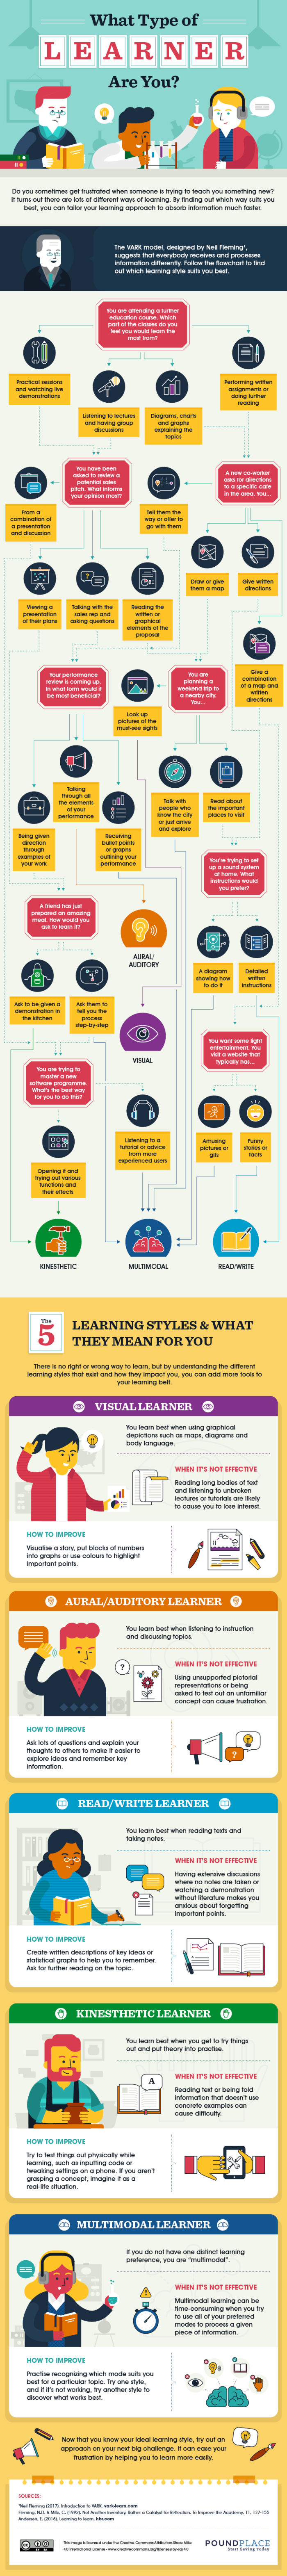 What Type of Learner Are You? (Infographic)